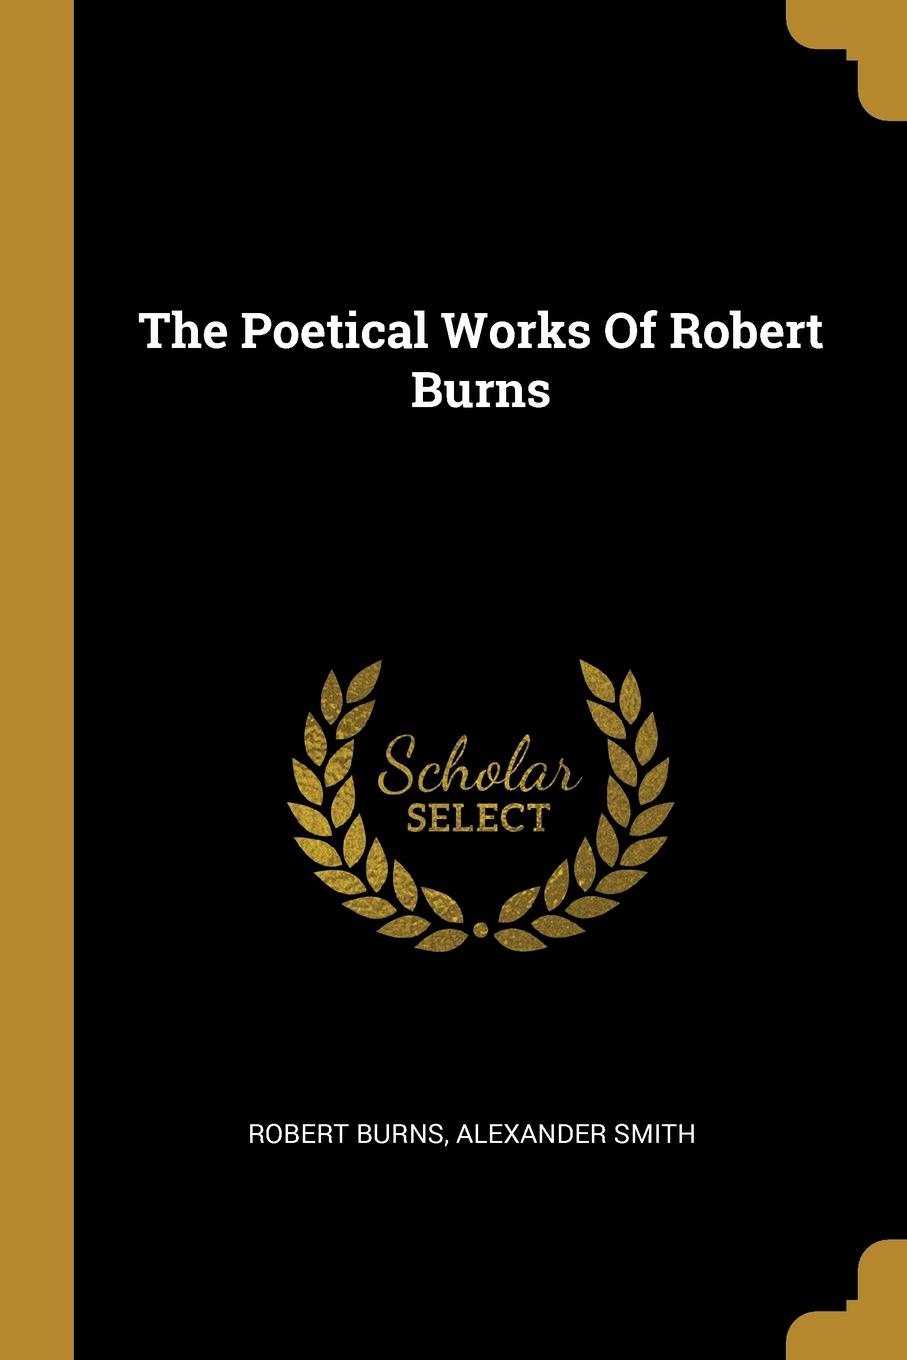 Robert Burns, Alexander Smith. The Poetical Works Of Robert Burns